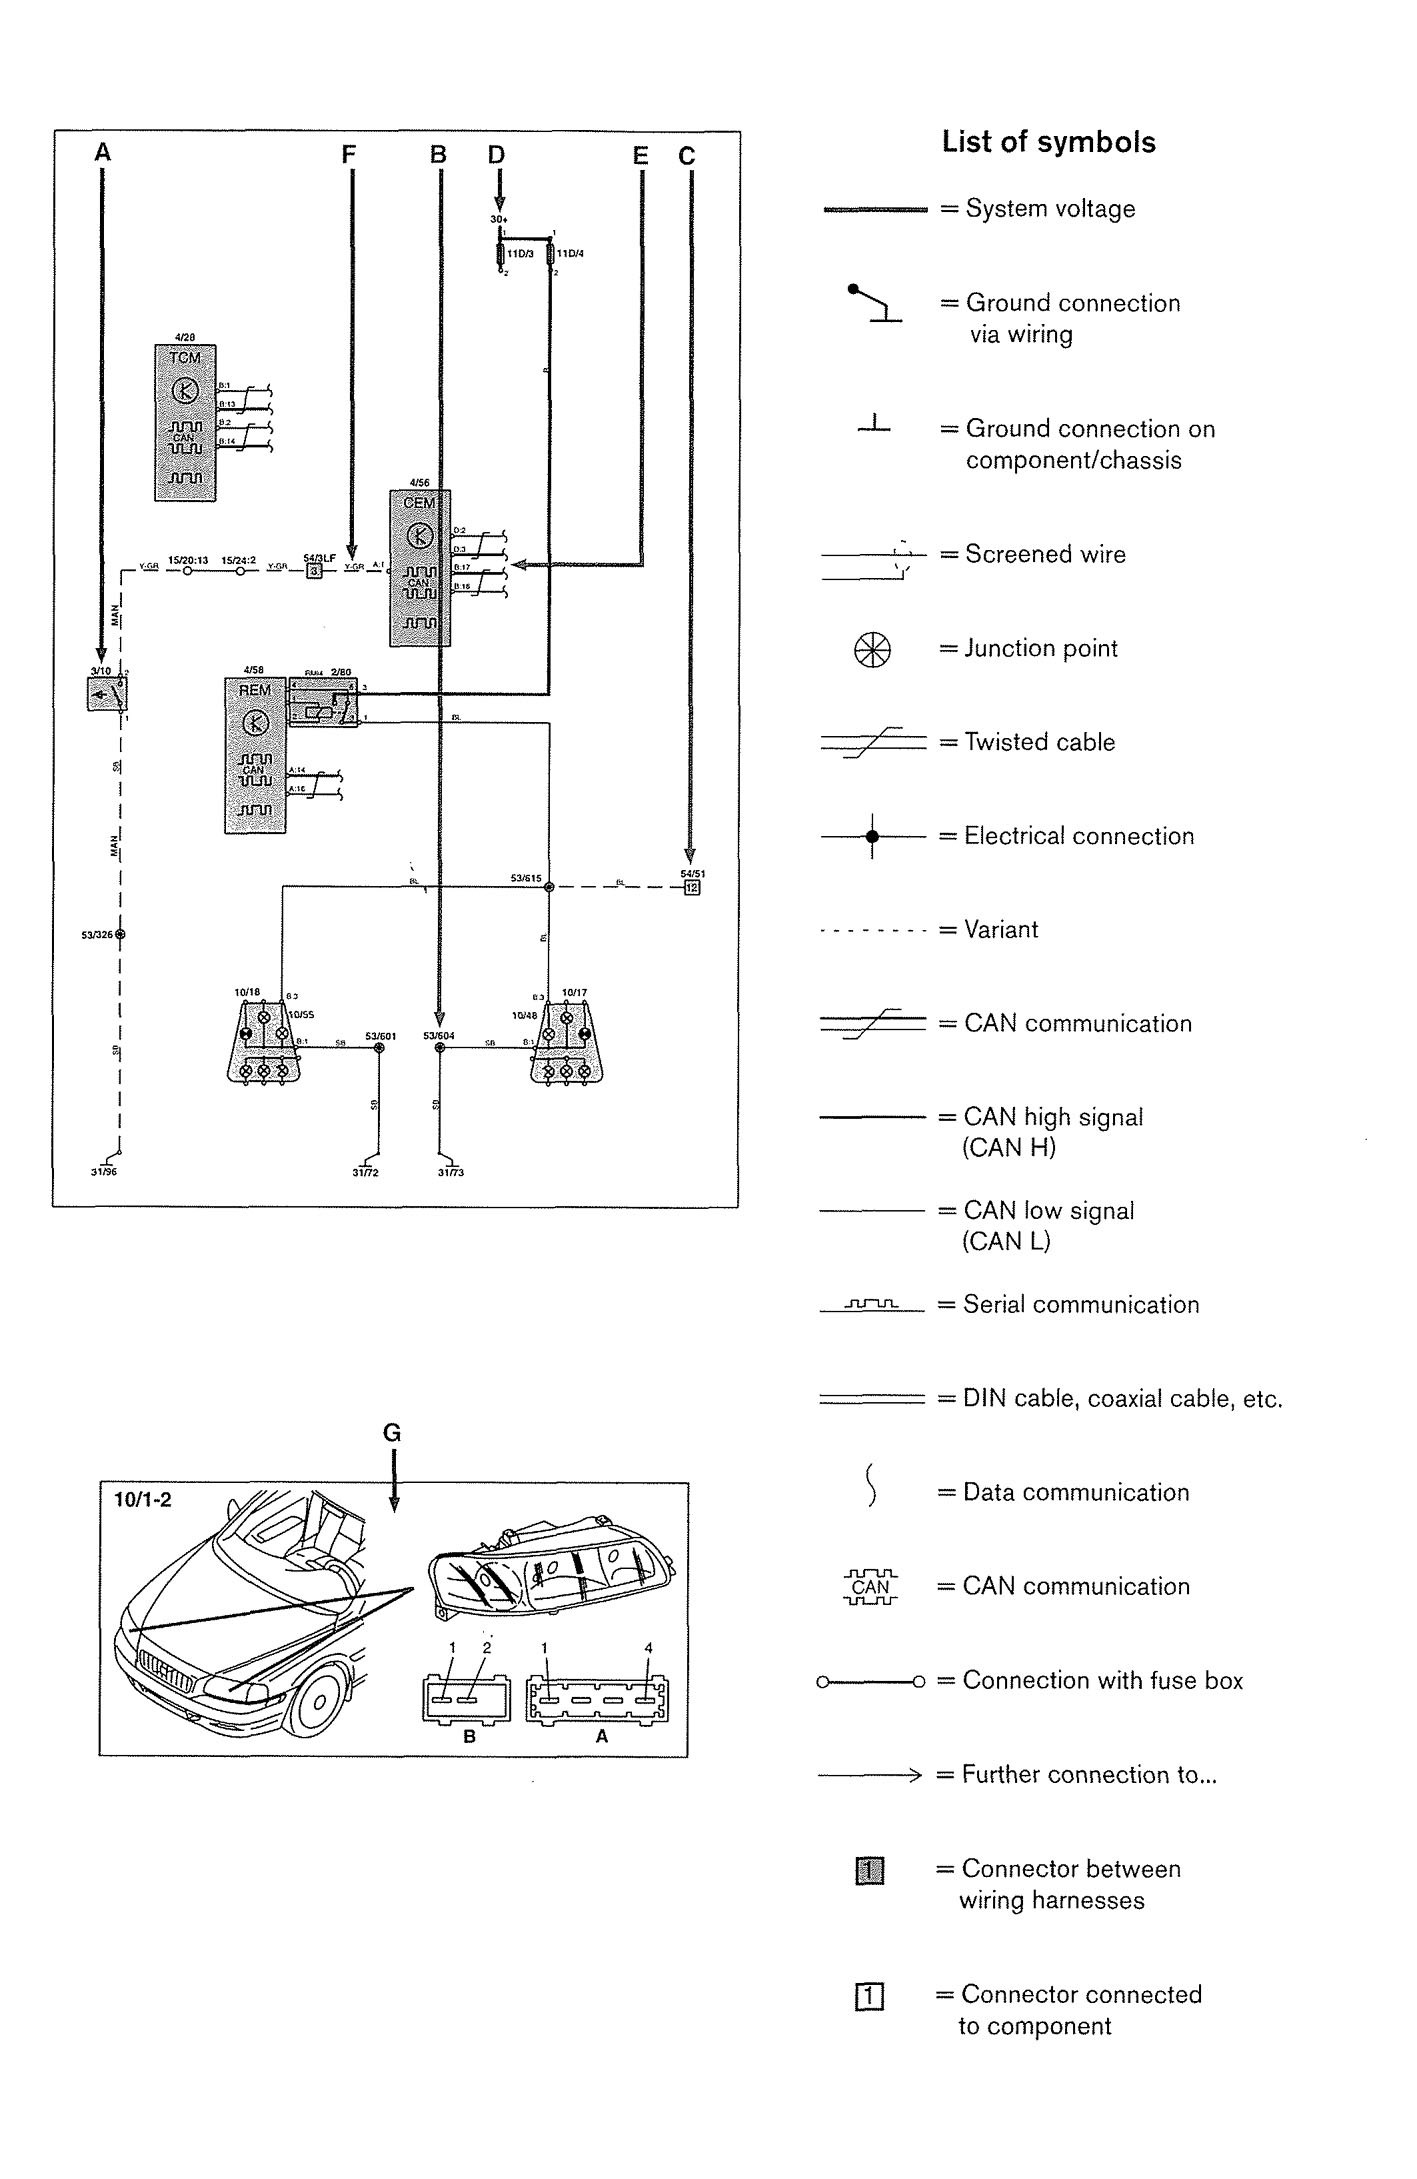 Volvo V70 Electrical Diagram Wiring Library 2000 S70 Free Download Schematic Symbol Id